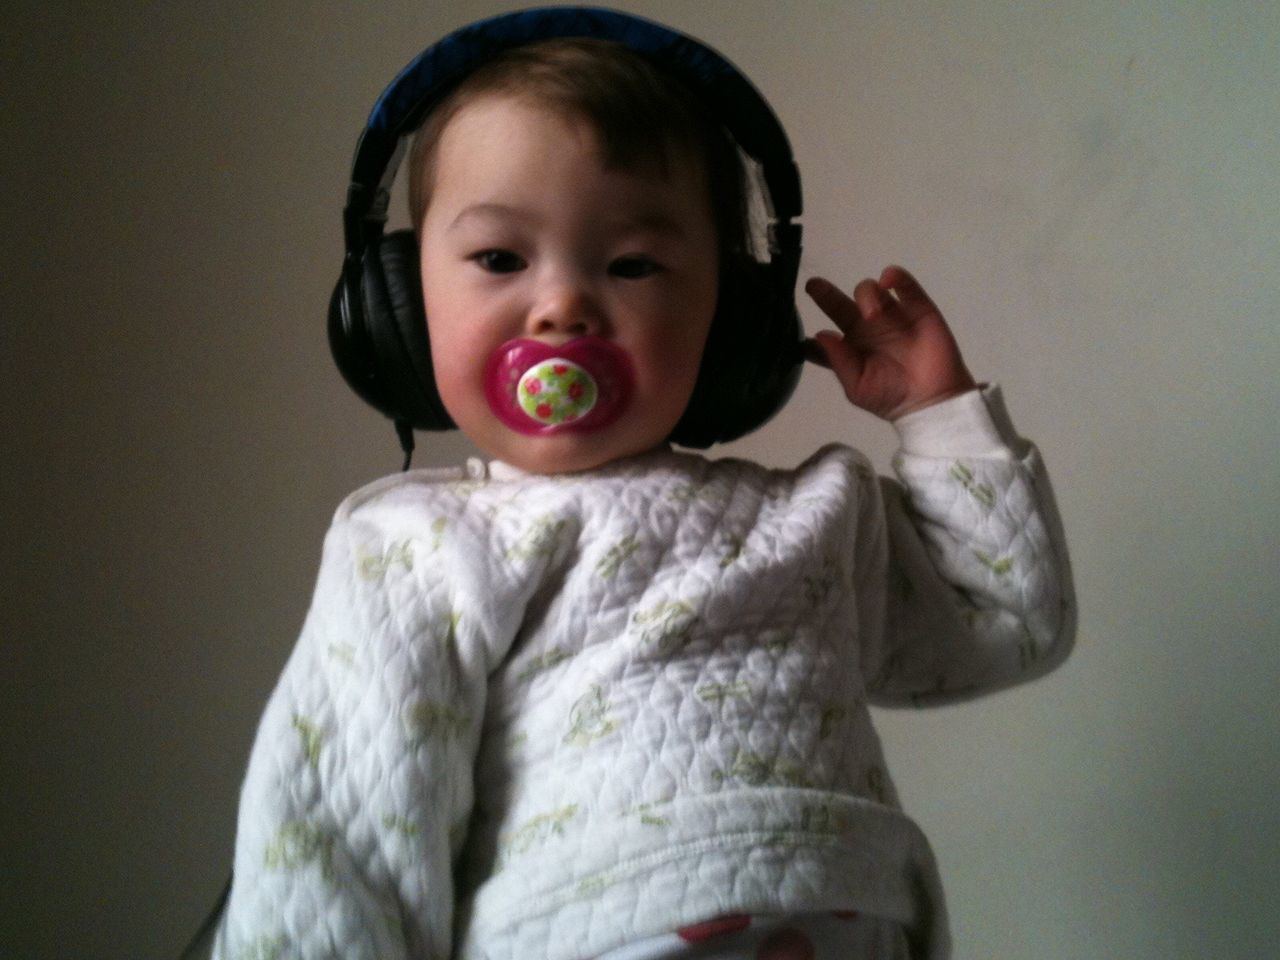 Cute Baby Girl Listening Music From Headphones Against Wall